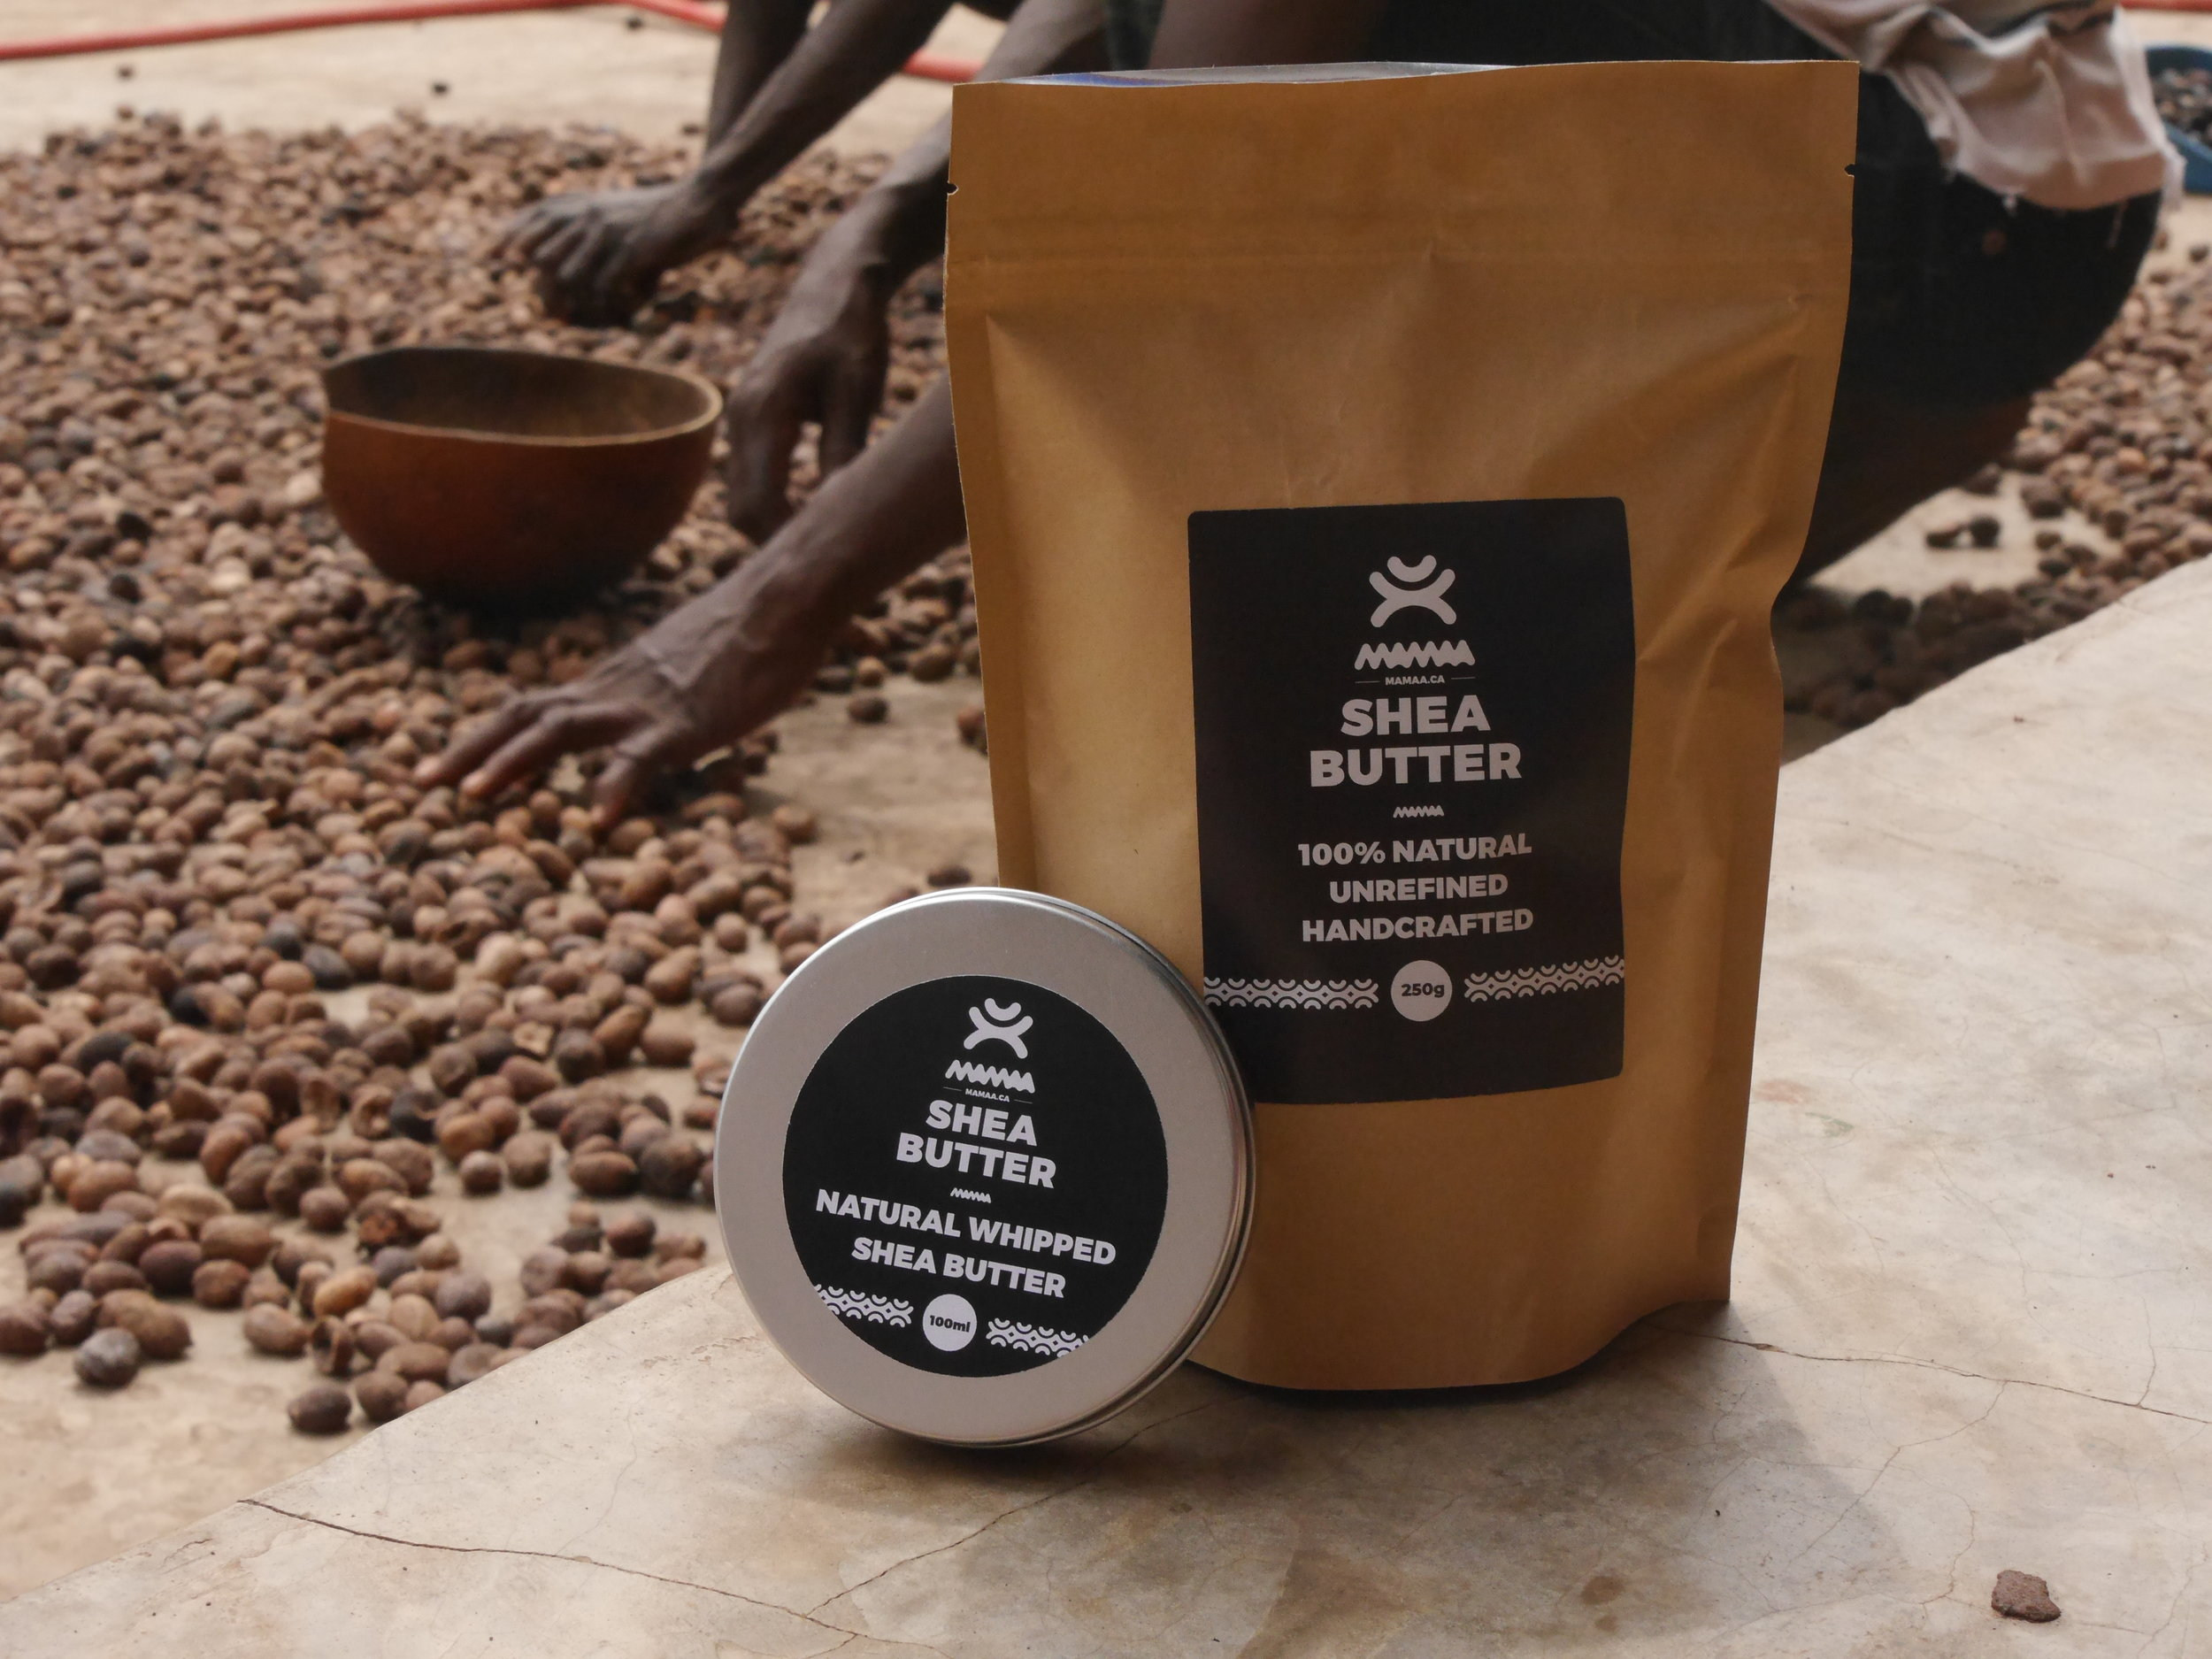 100% Natural - From Ghana